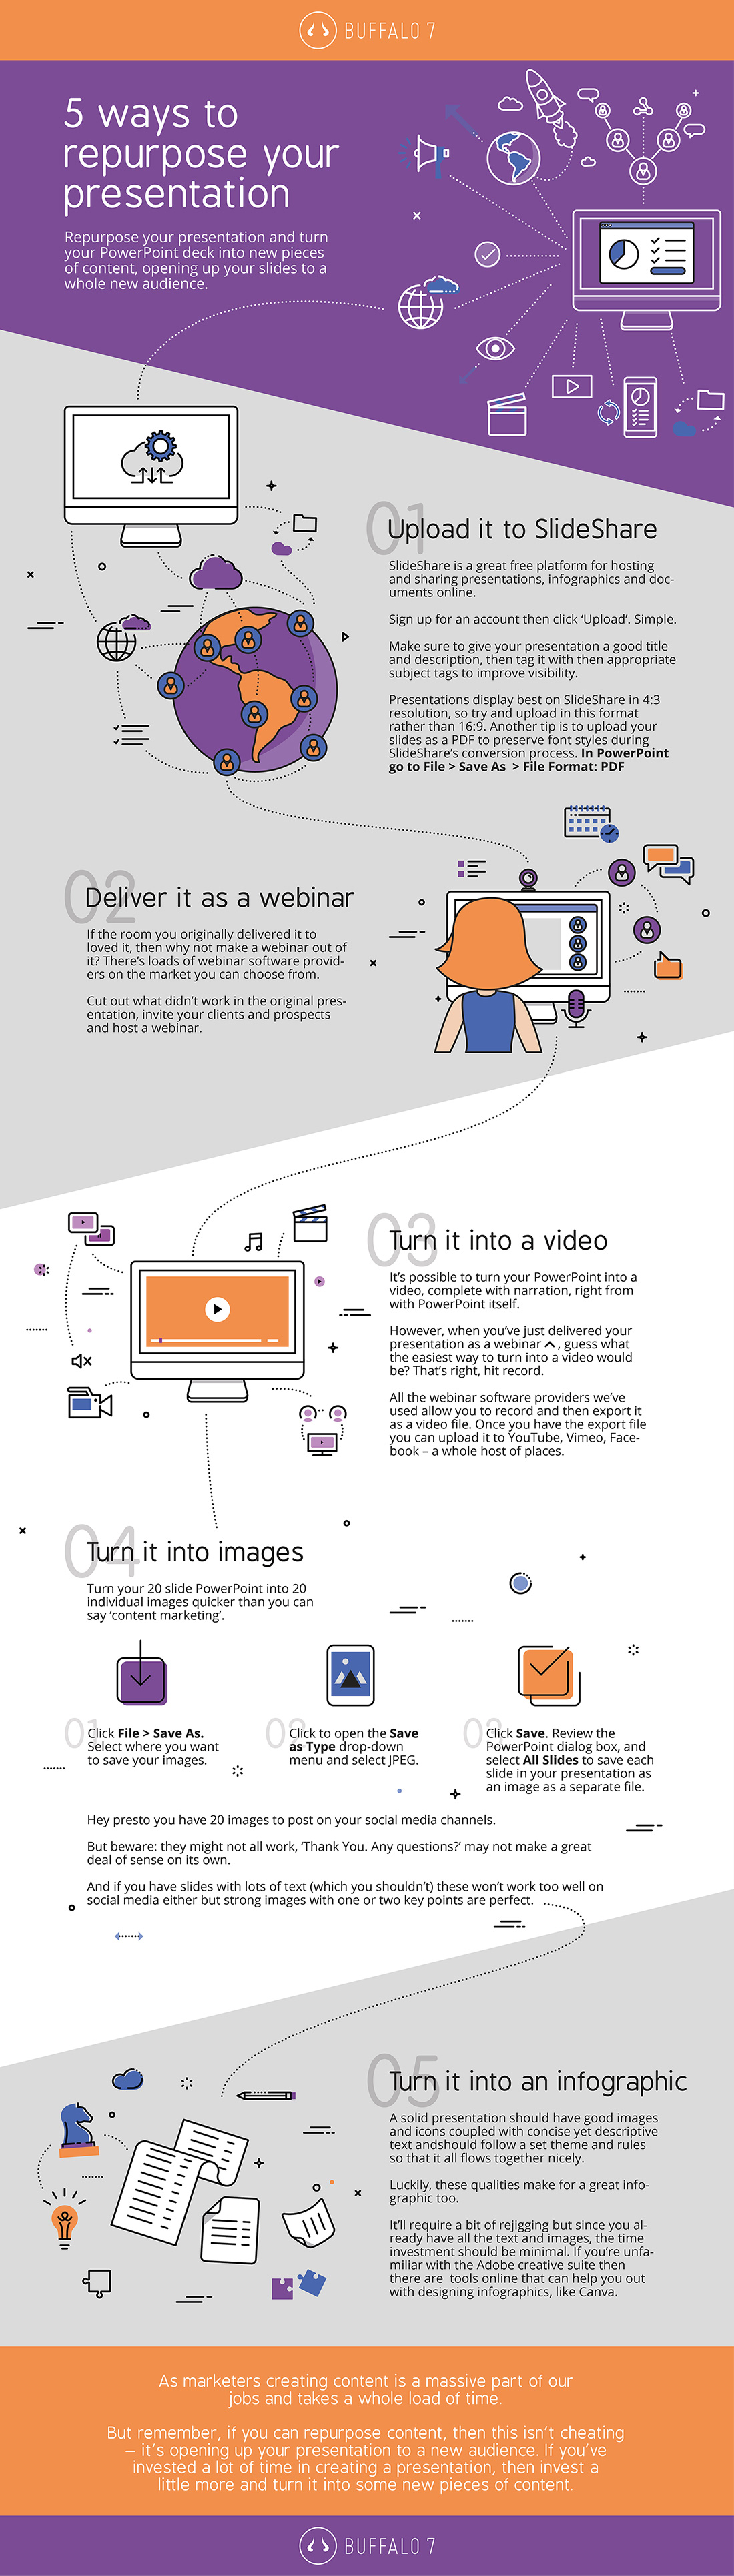 infographic repurpose presentation content